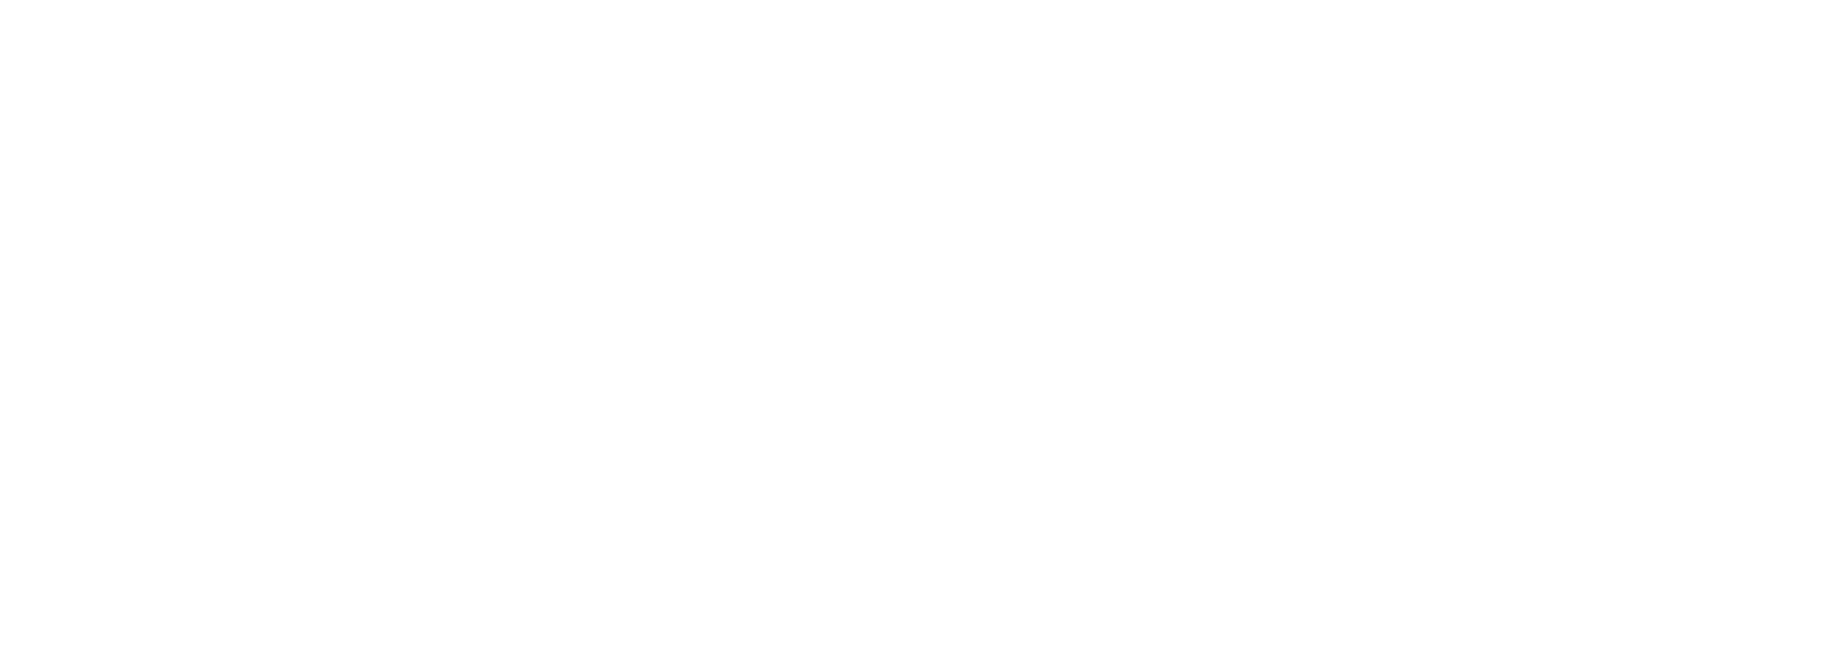 Scott Rice logo